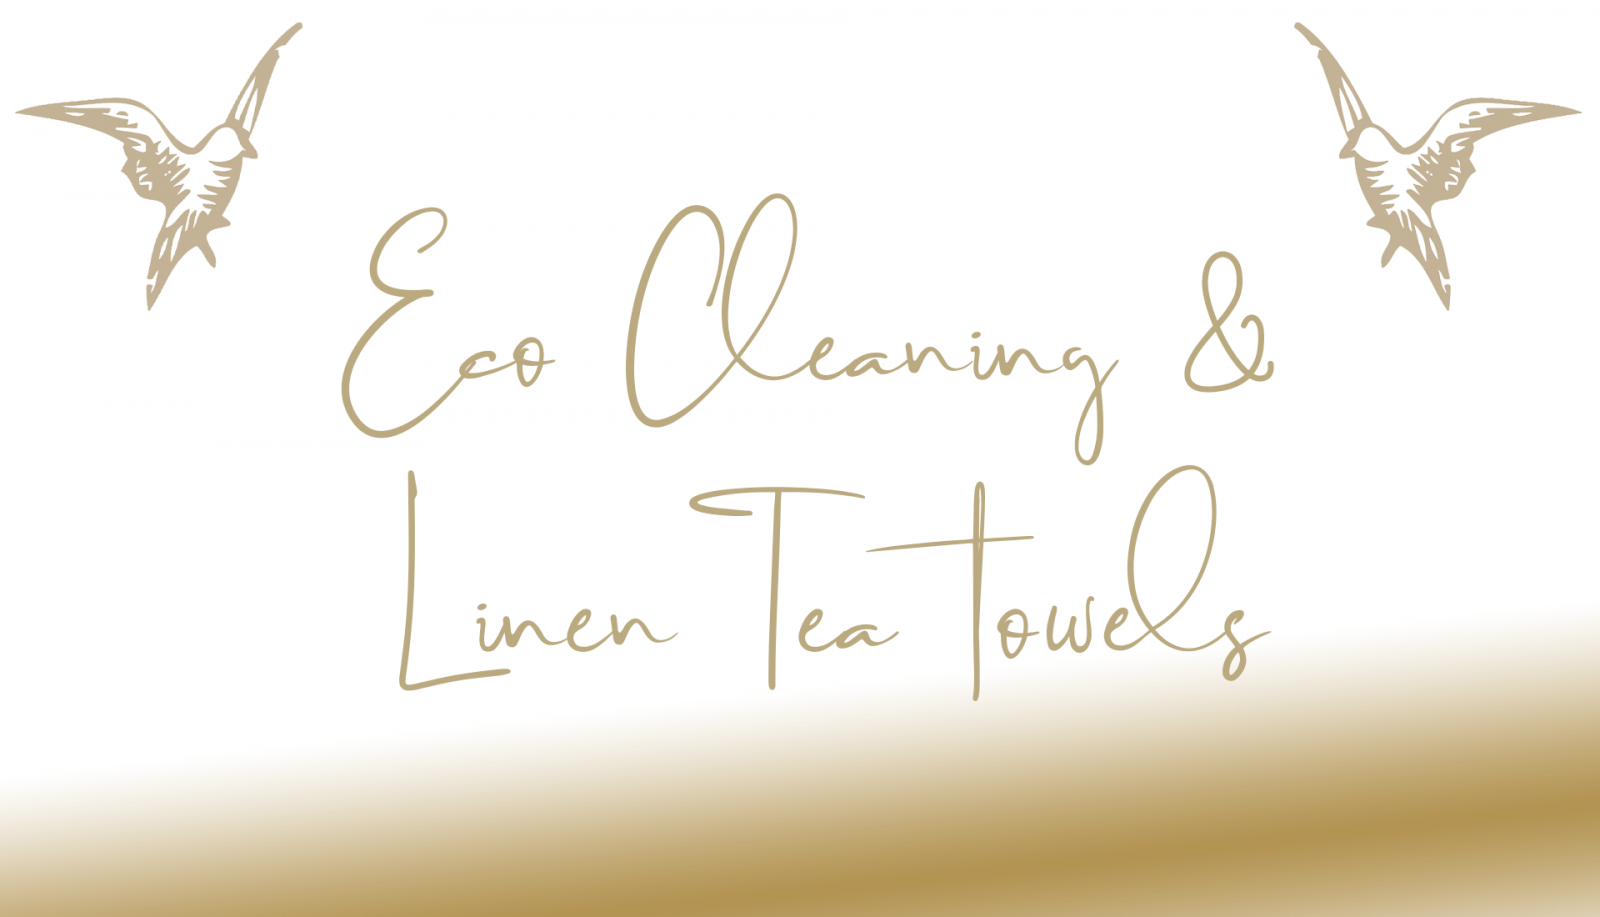 Shop-eco-cleaning-and-linen-tea-towel-Products-Cider-Tonic.